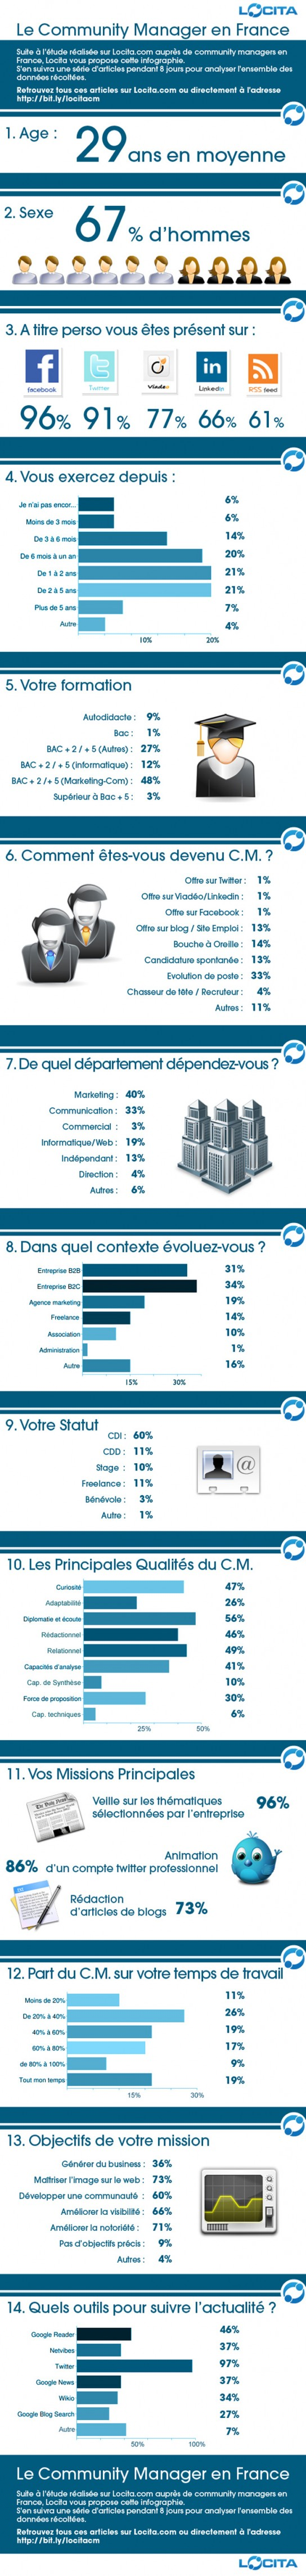 Le profil du community manager en France